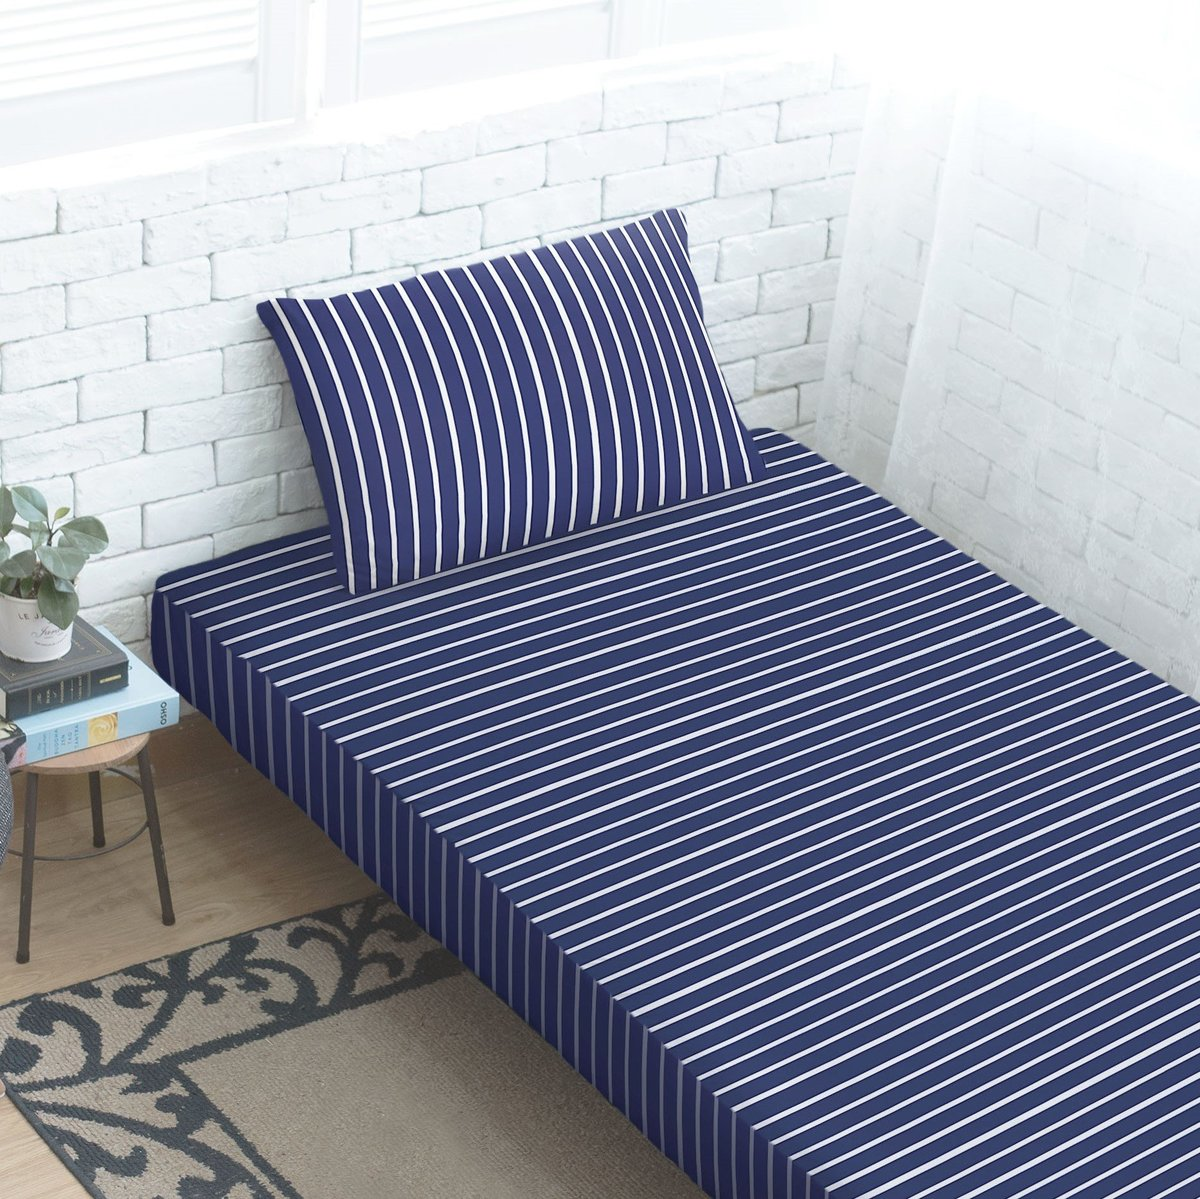 Cotton Stretch Knit Fitted Sheet + Pillowcasee -  Navy Blue/white stripes